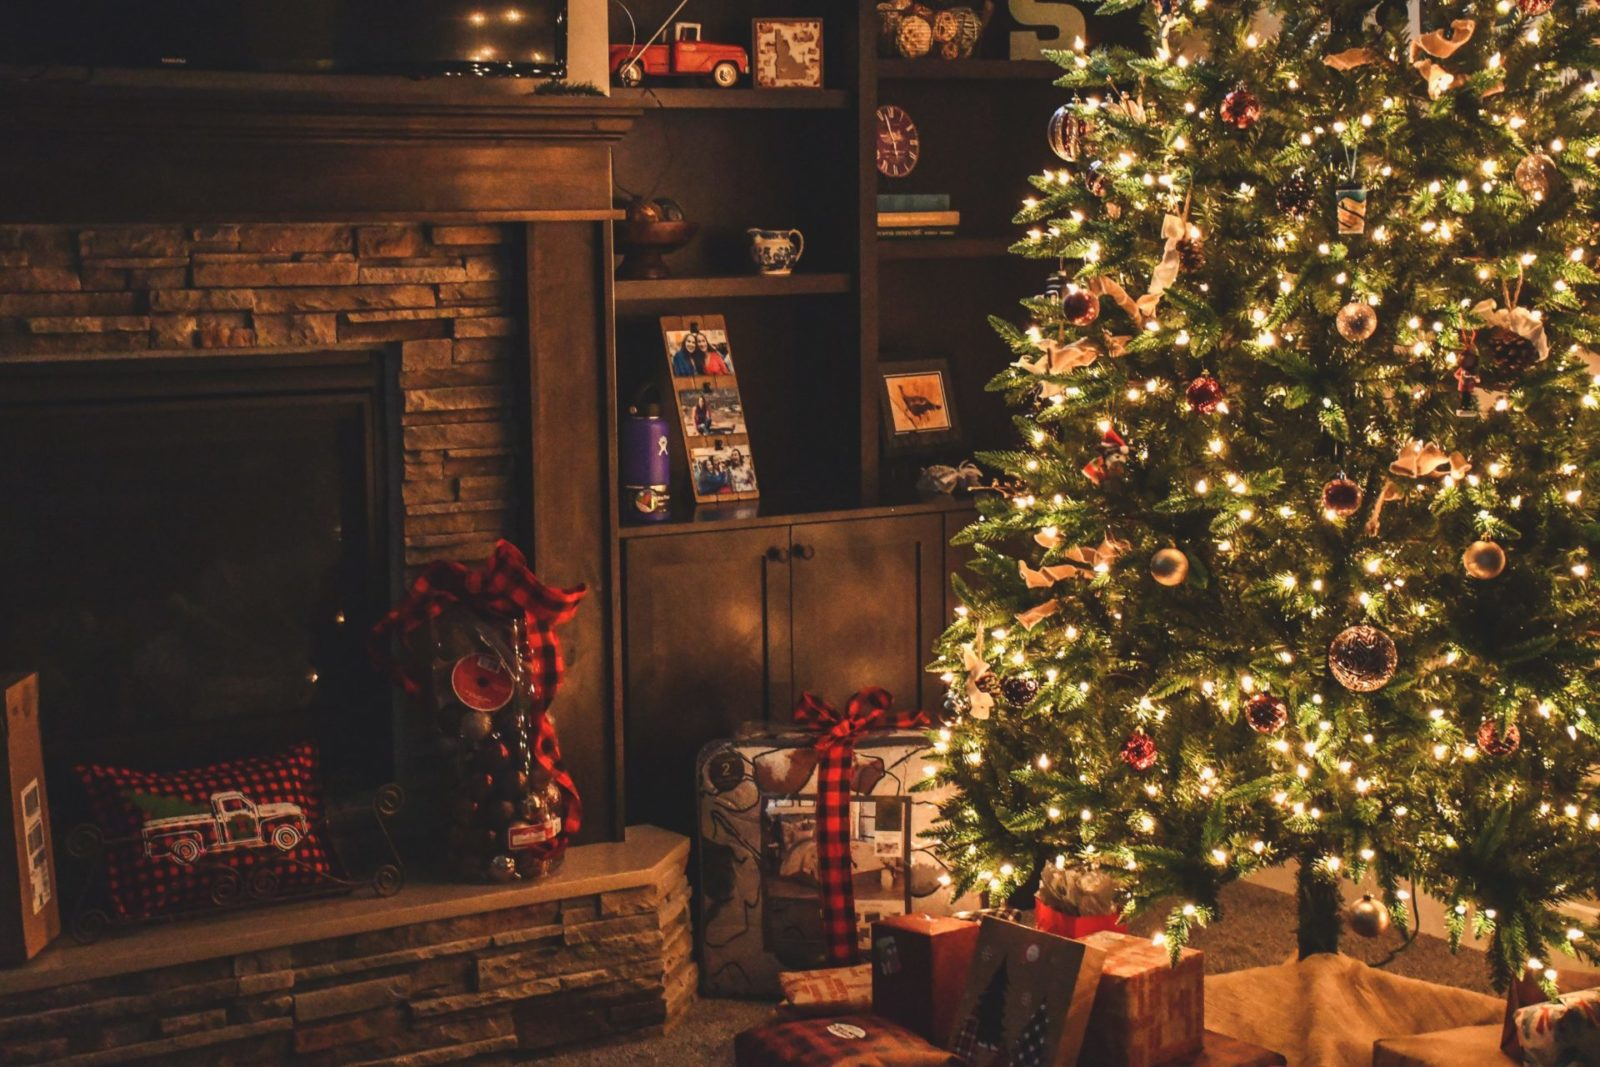 How to have a Covid-safe Christmas